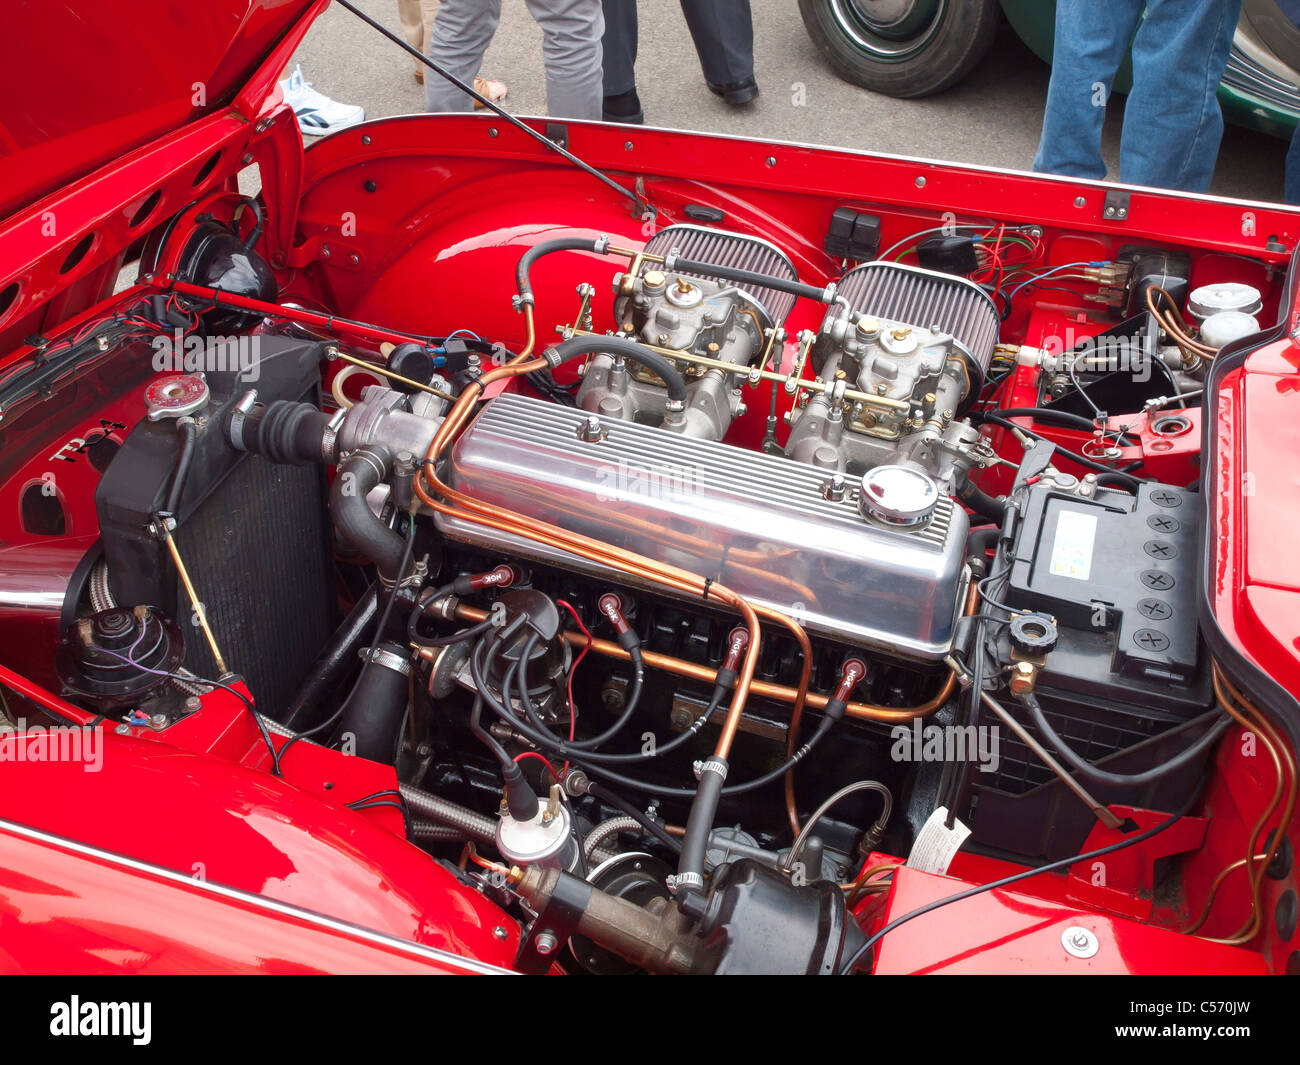 Under The Bonnet Engine Of A Classic Triumph Tr4 Sports Car Stock